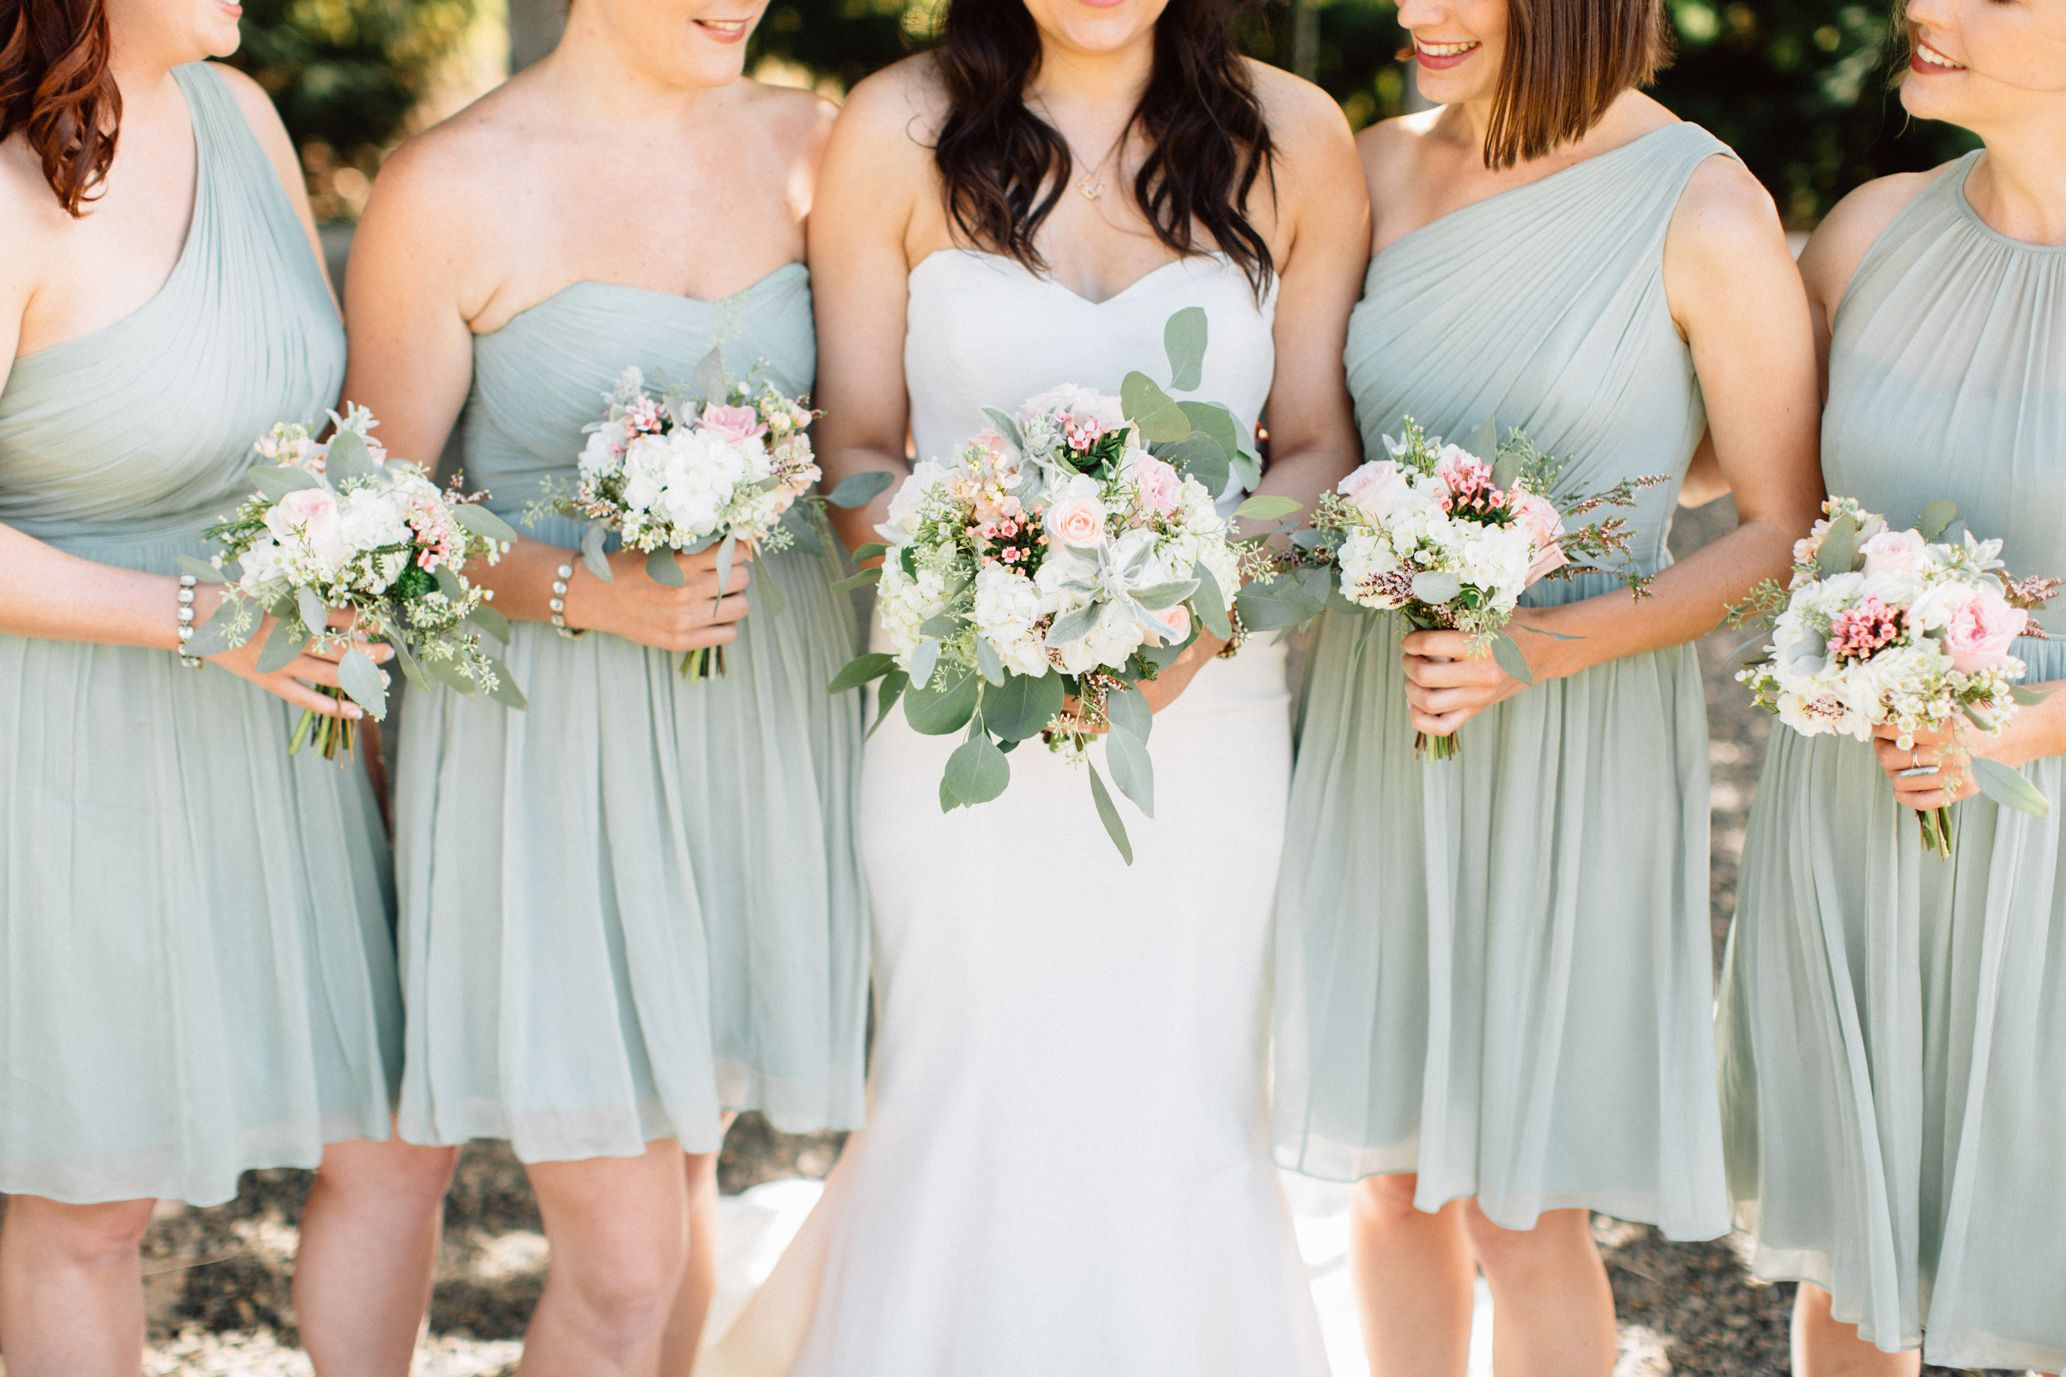 Sage jew bridesmaid dresses wedding colors pinterest bridesmaid sage jew bridesmaid dresses ombrellifo Choice Image